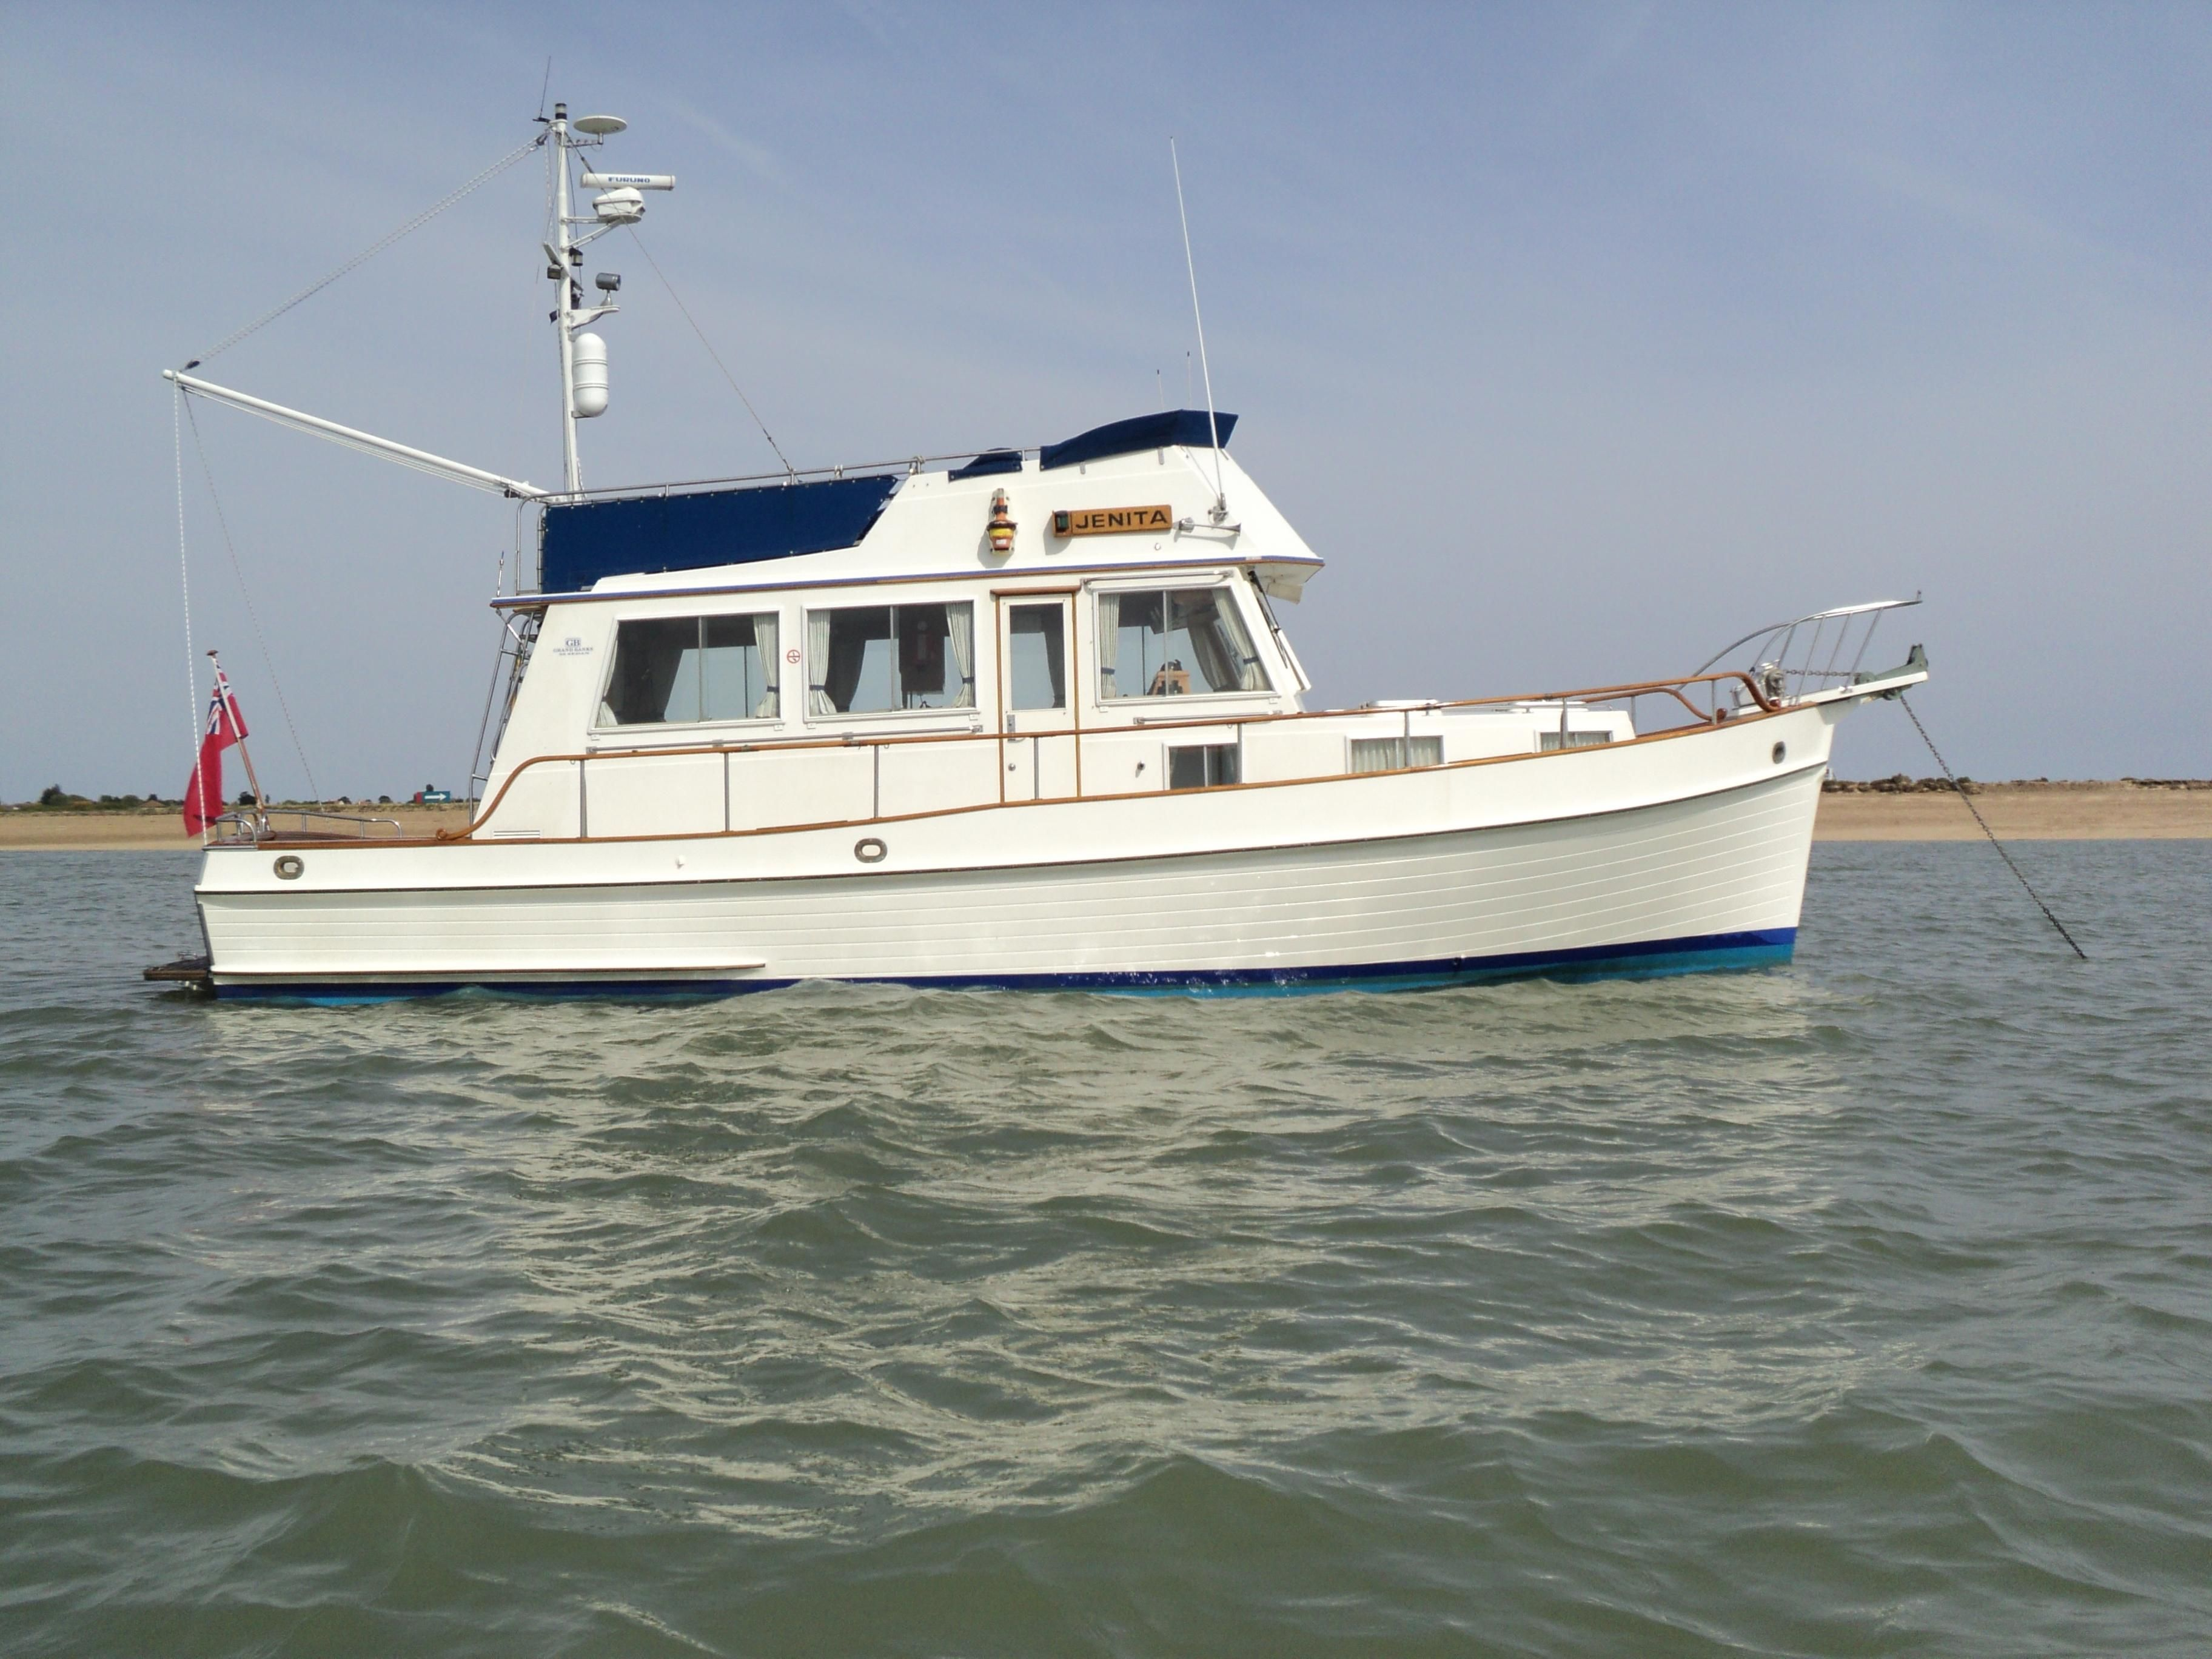 1991 grand banks 36 sedan power boat for sale www for Grand banks motor yachts for sale